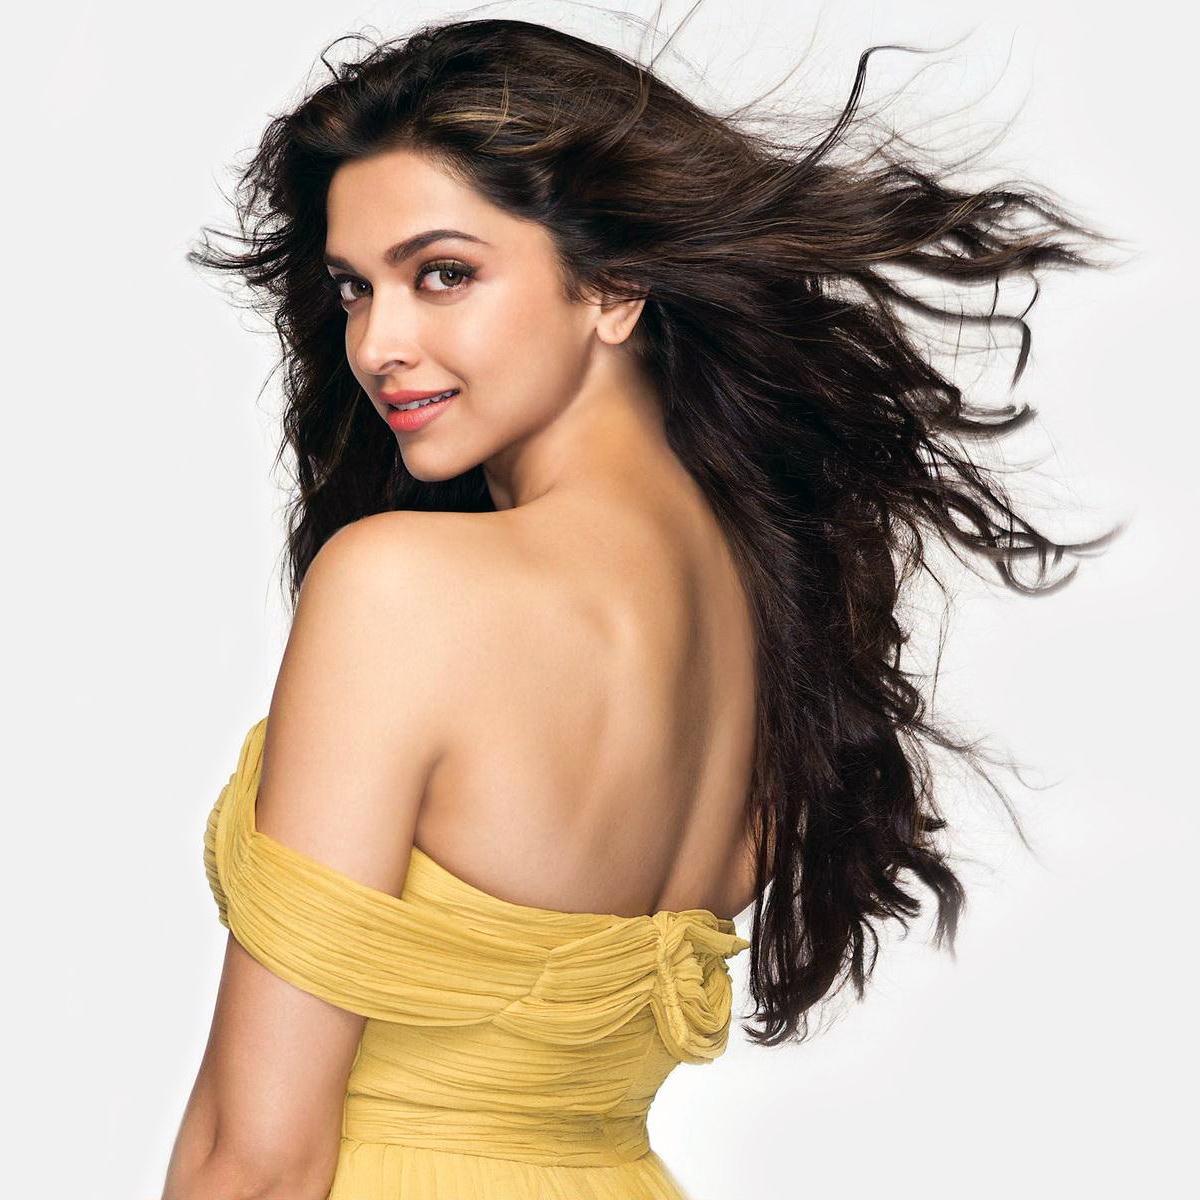 Deepika-Padukone-wallpaper-wp3004889